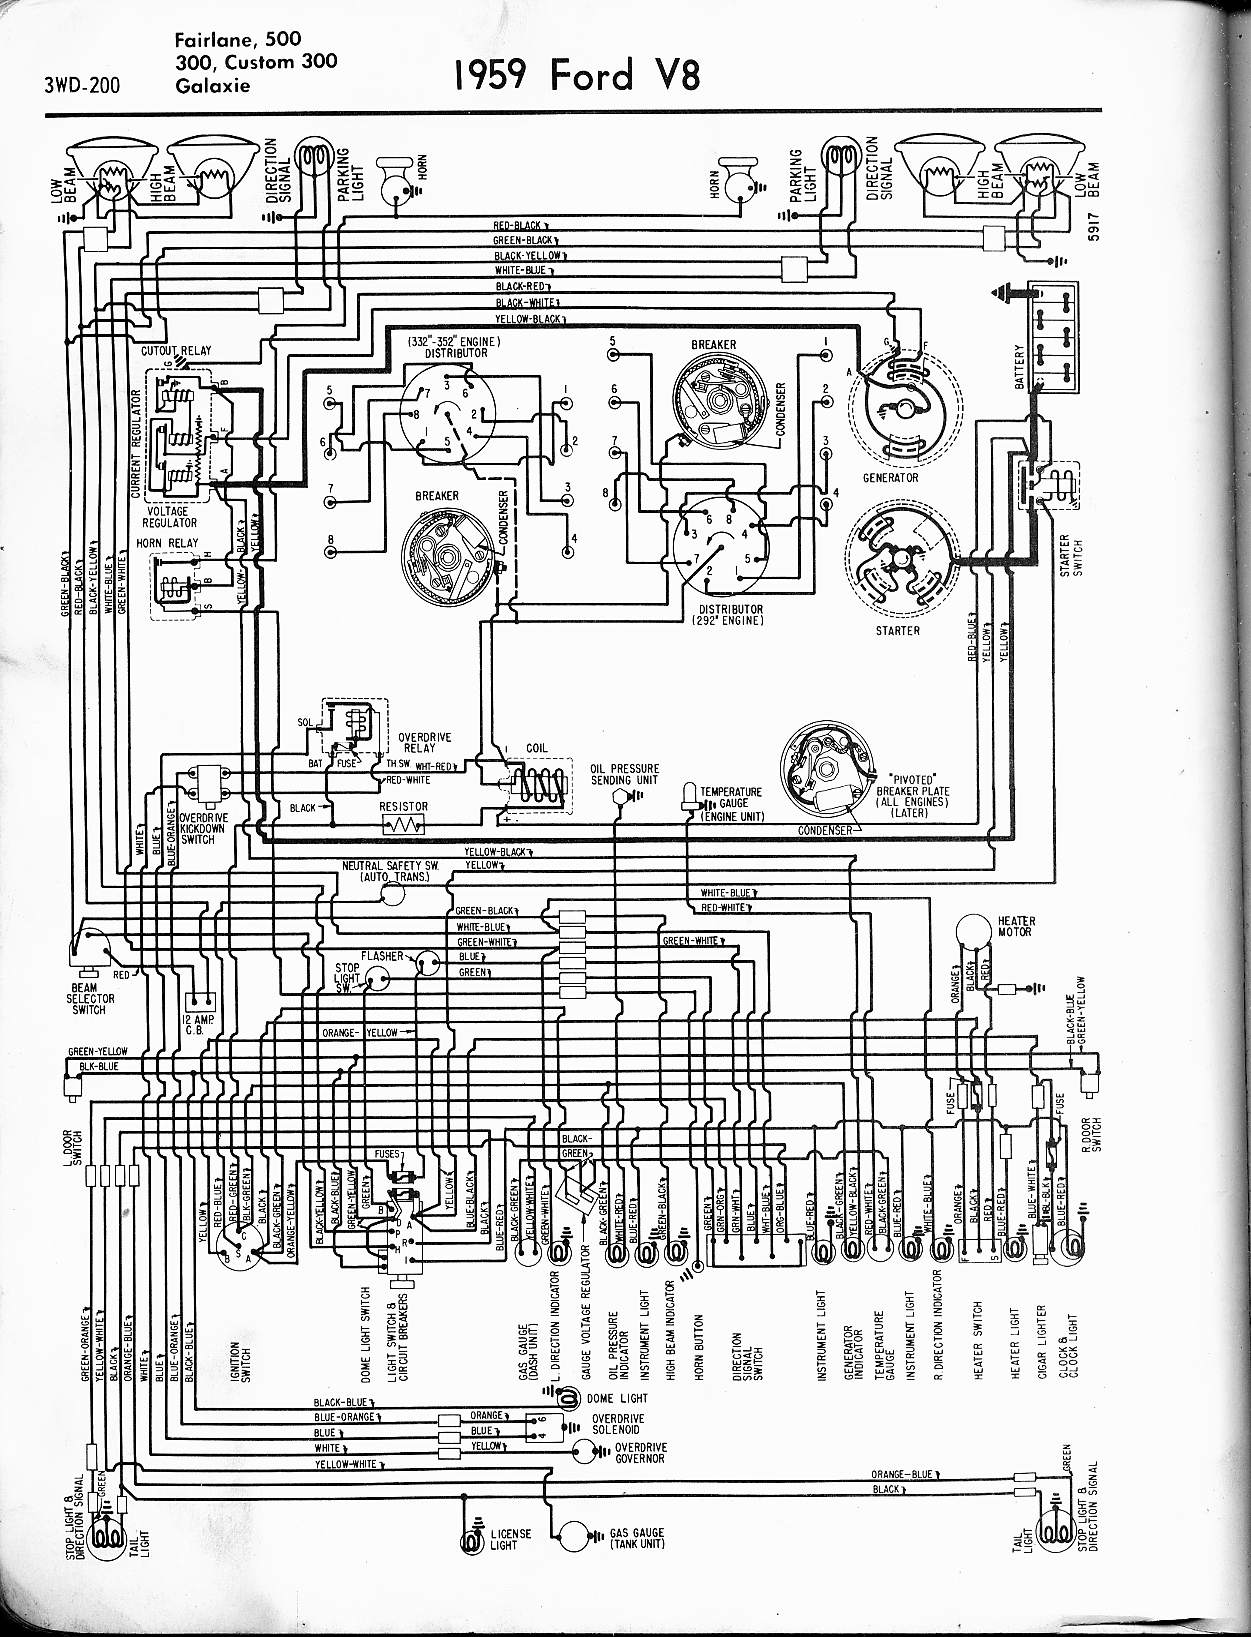 57 65 Ford Wiring Diagrams Automotive Car Diagram 1959 V8 Fairlane 500 300 Custom